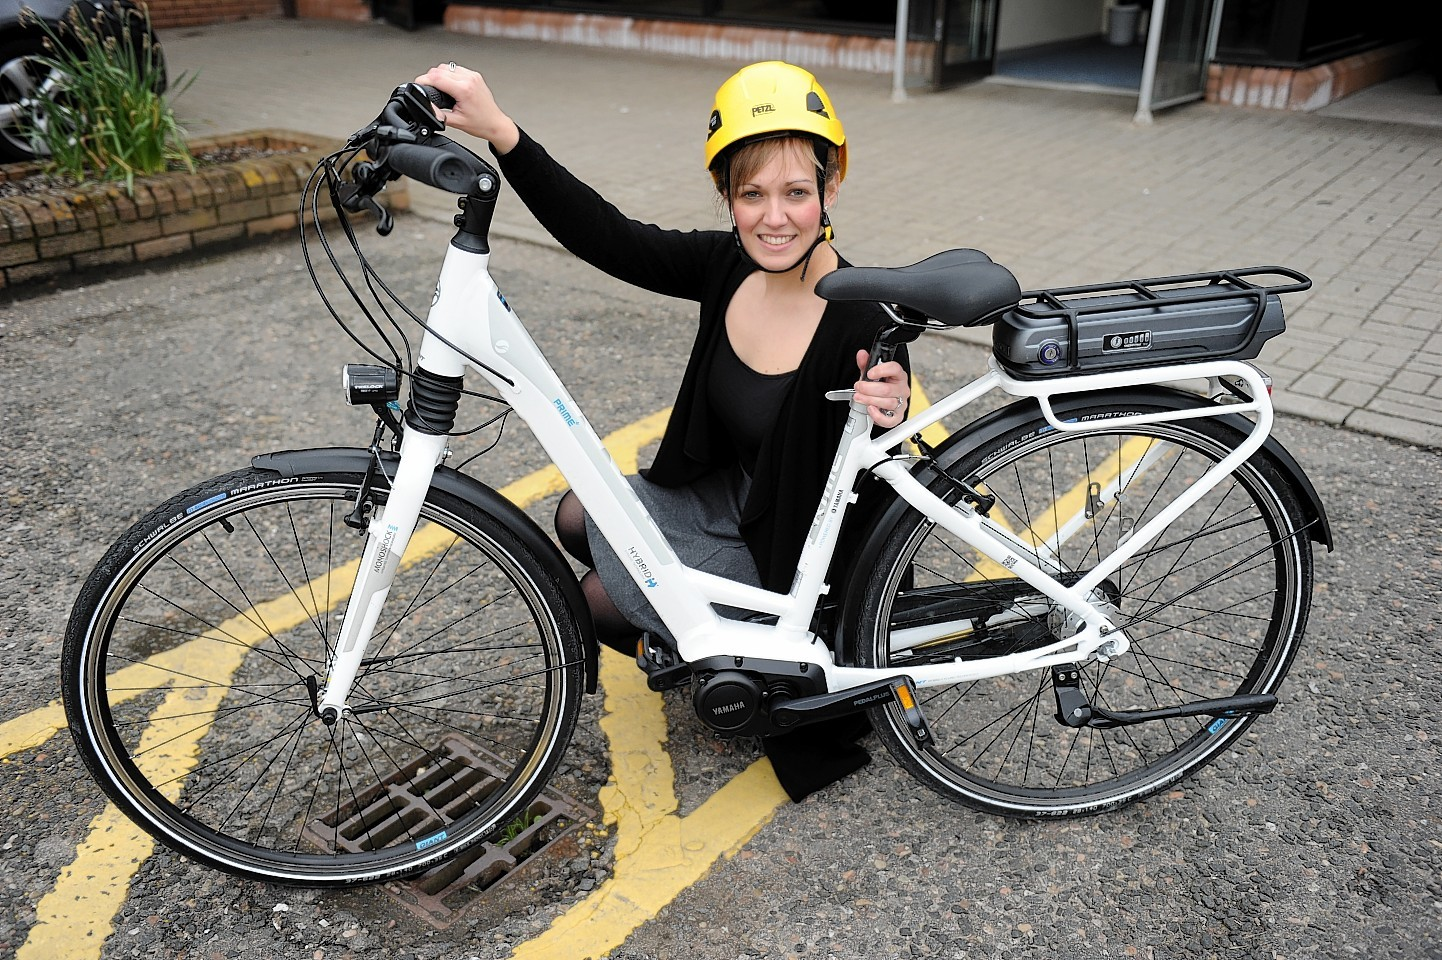 Inverness electric bike scheme